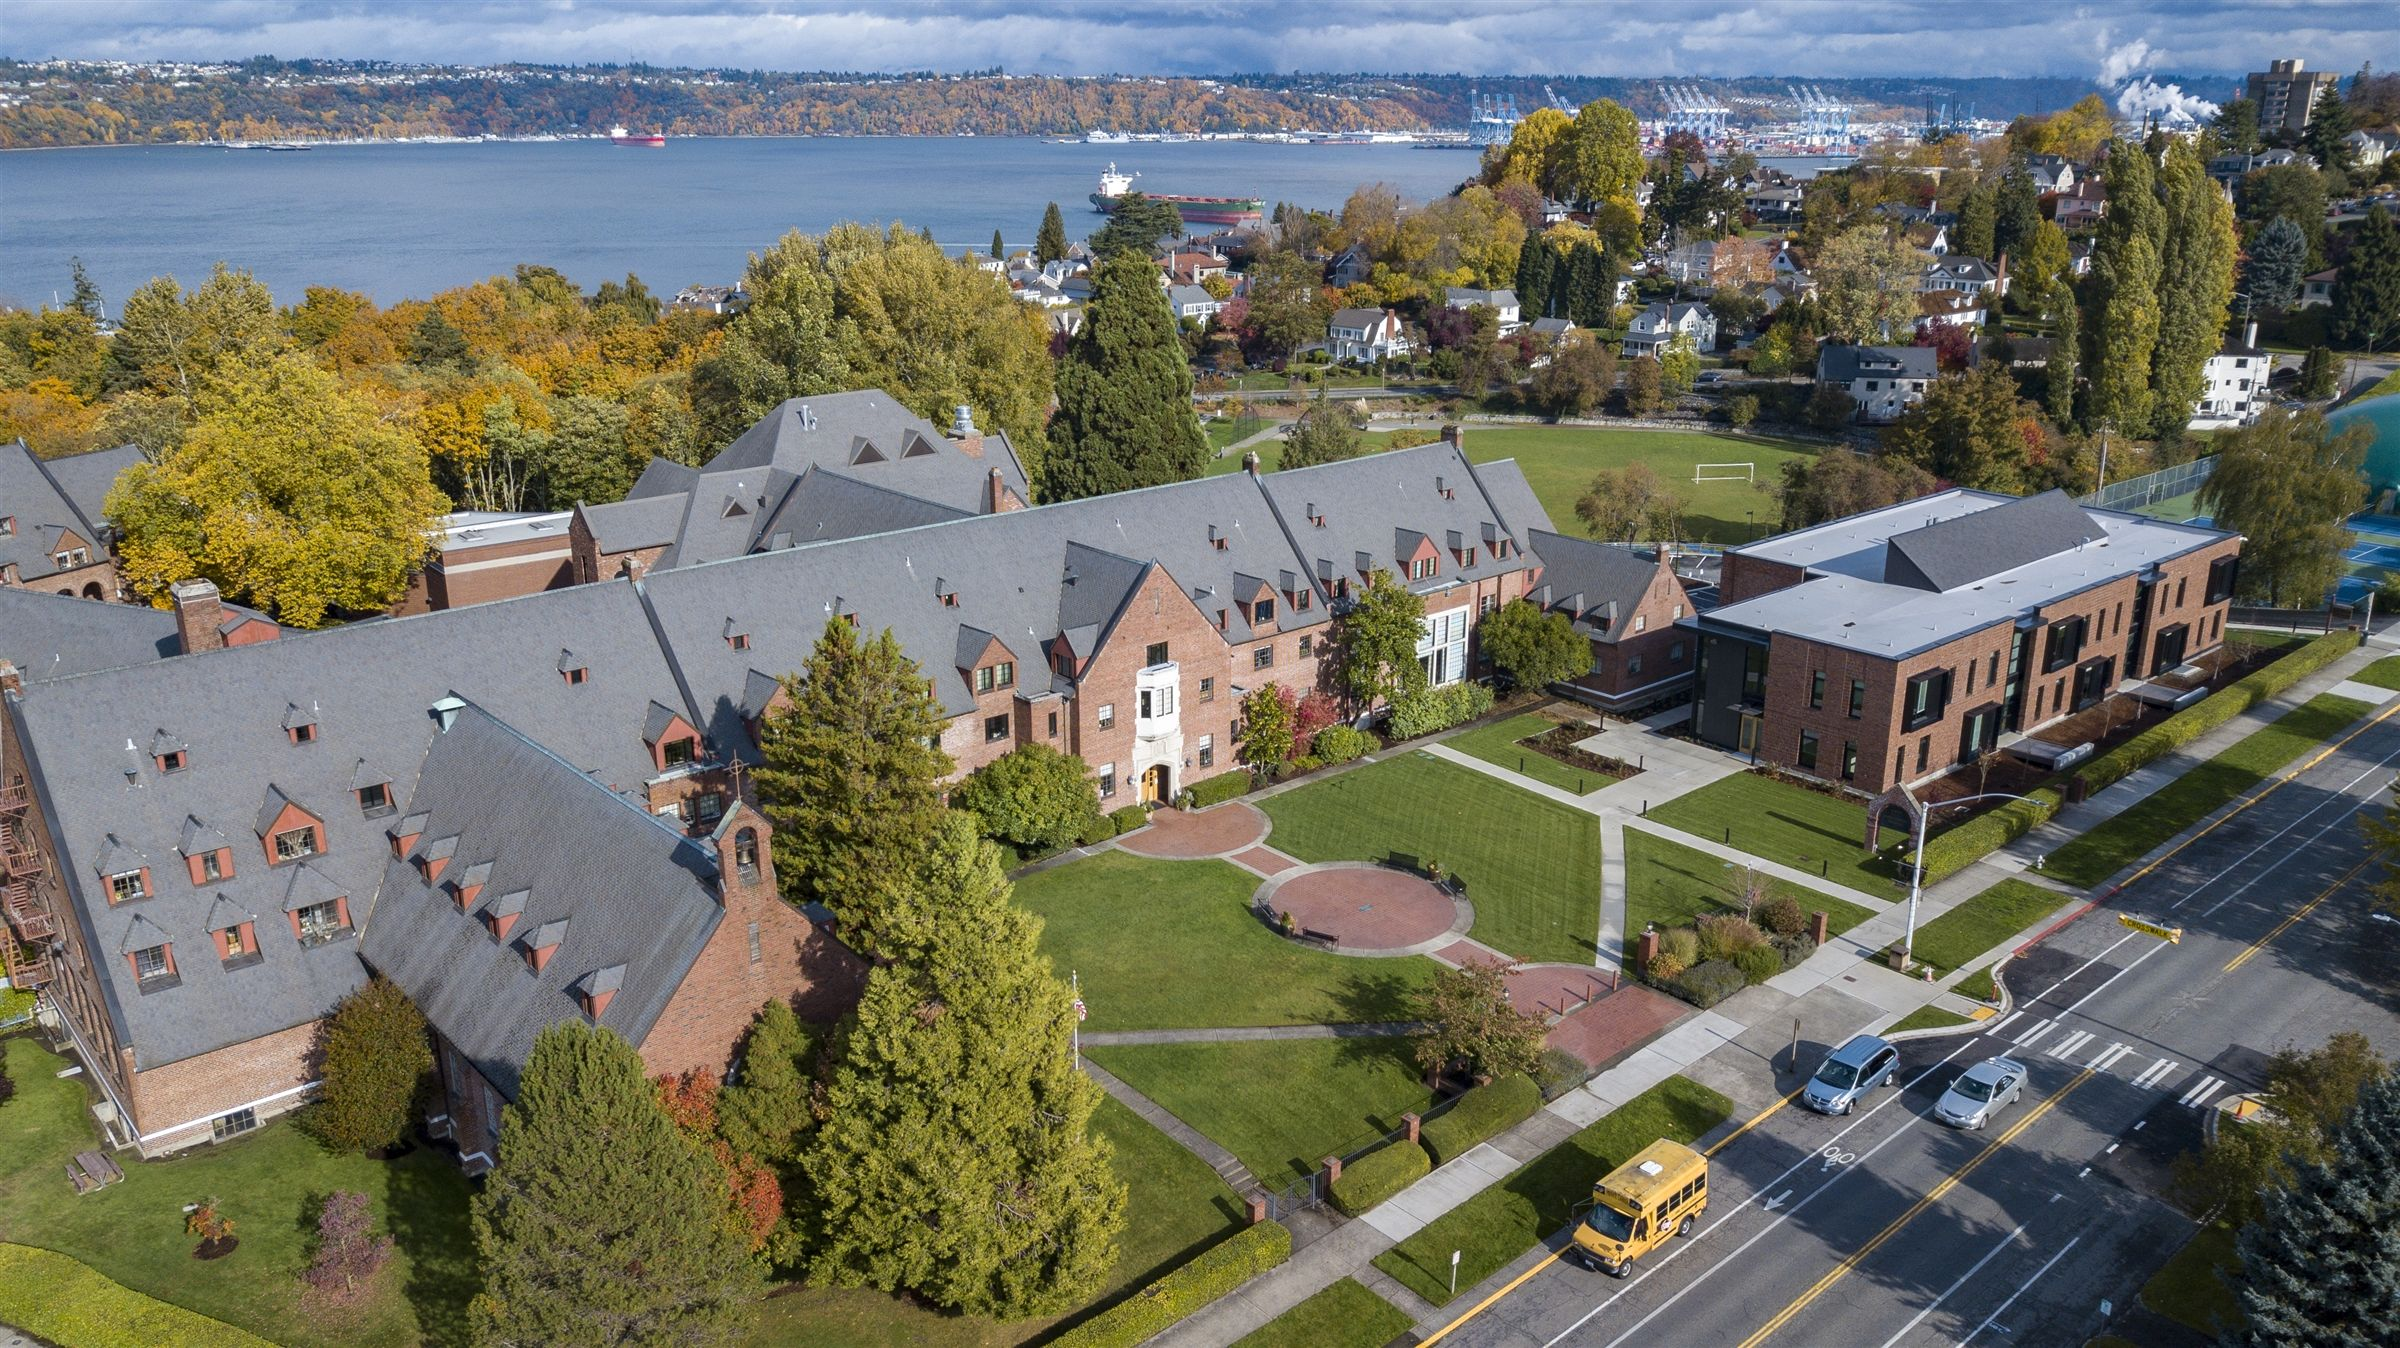 Annie Wright Schools are situated on ten acres overlooking Commencement Bay in the historic Old Town district of North Tacoma.